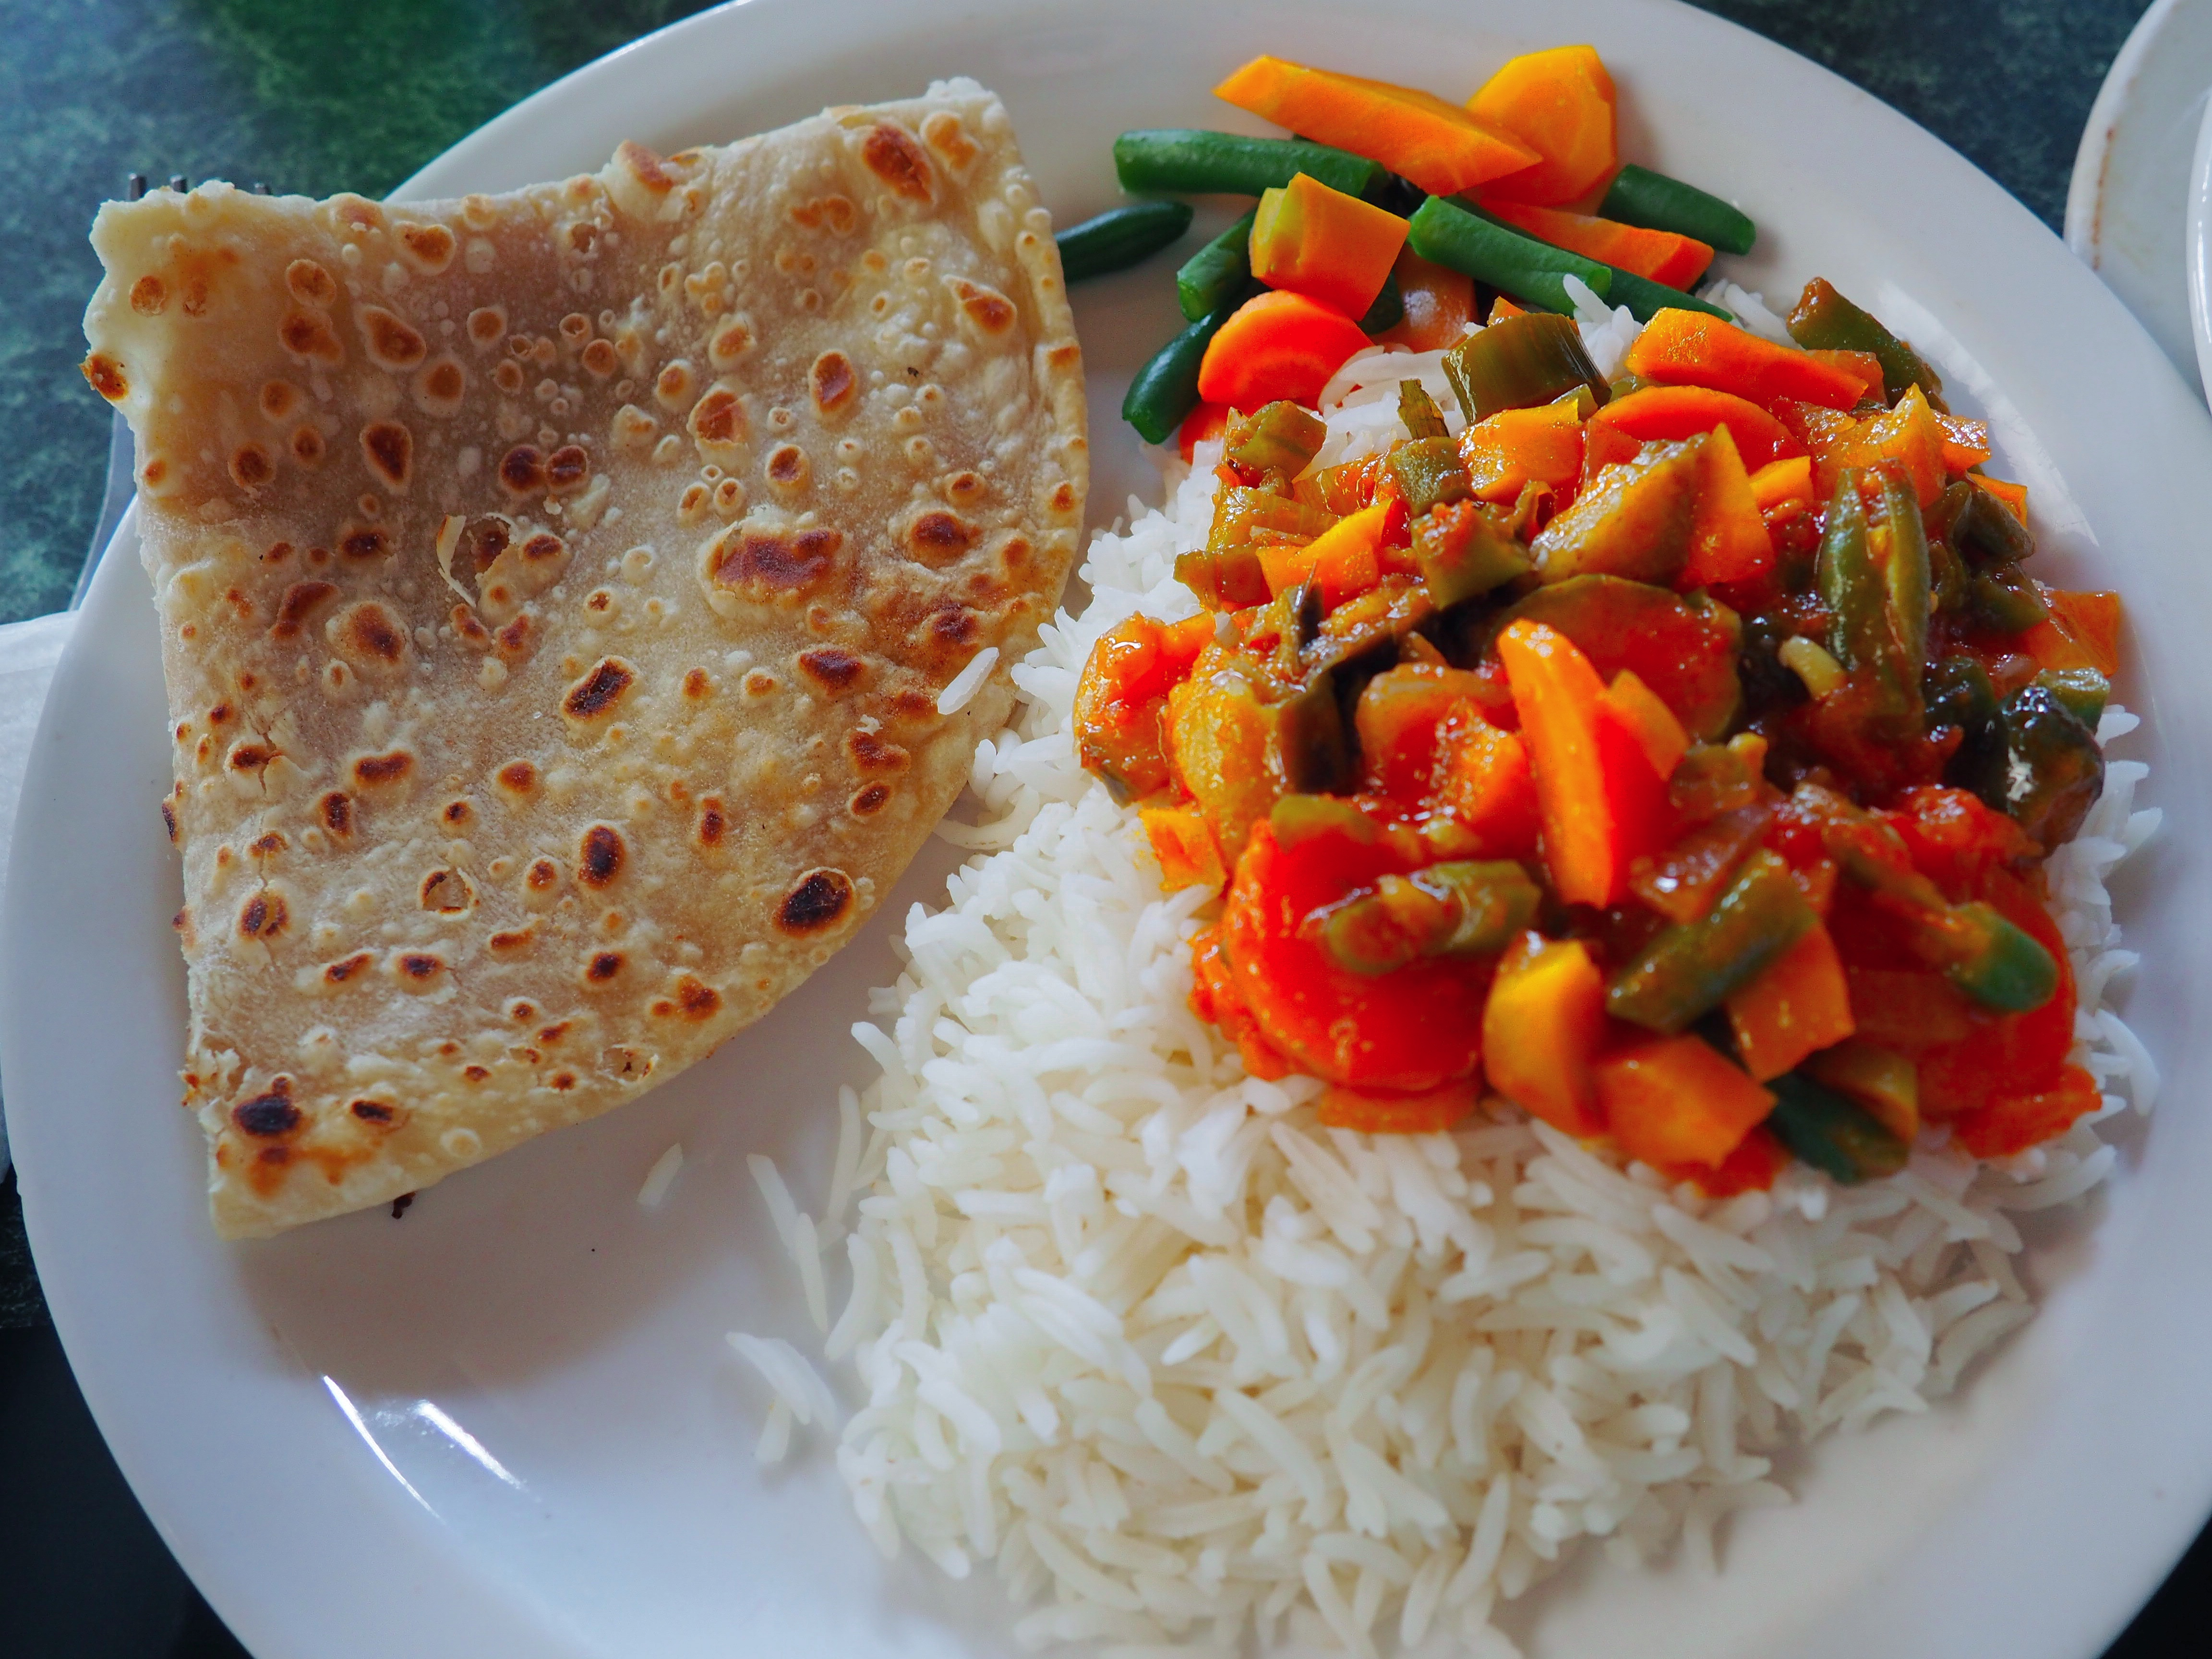 An out-of-focus Ugandan meal: vegetable stew, rice, and chapati